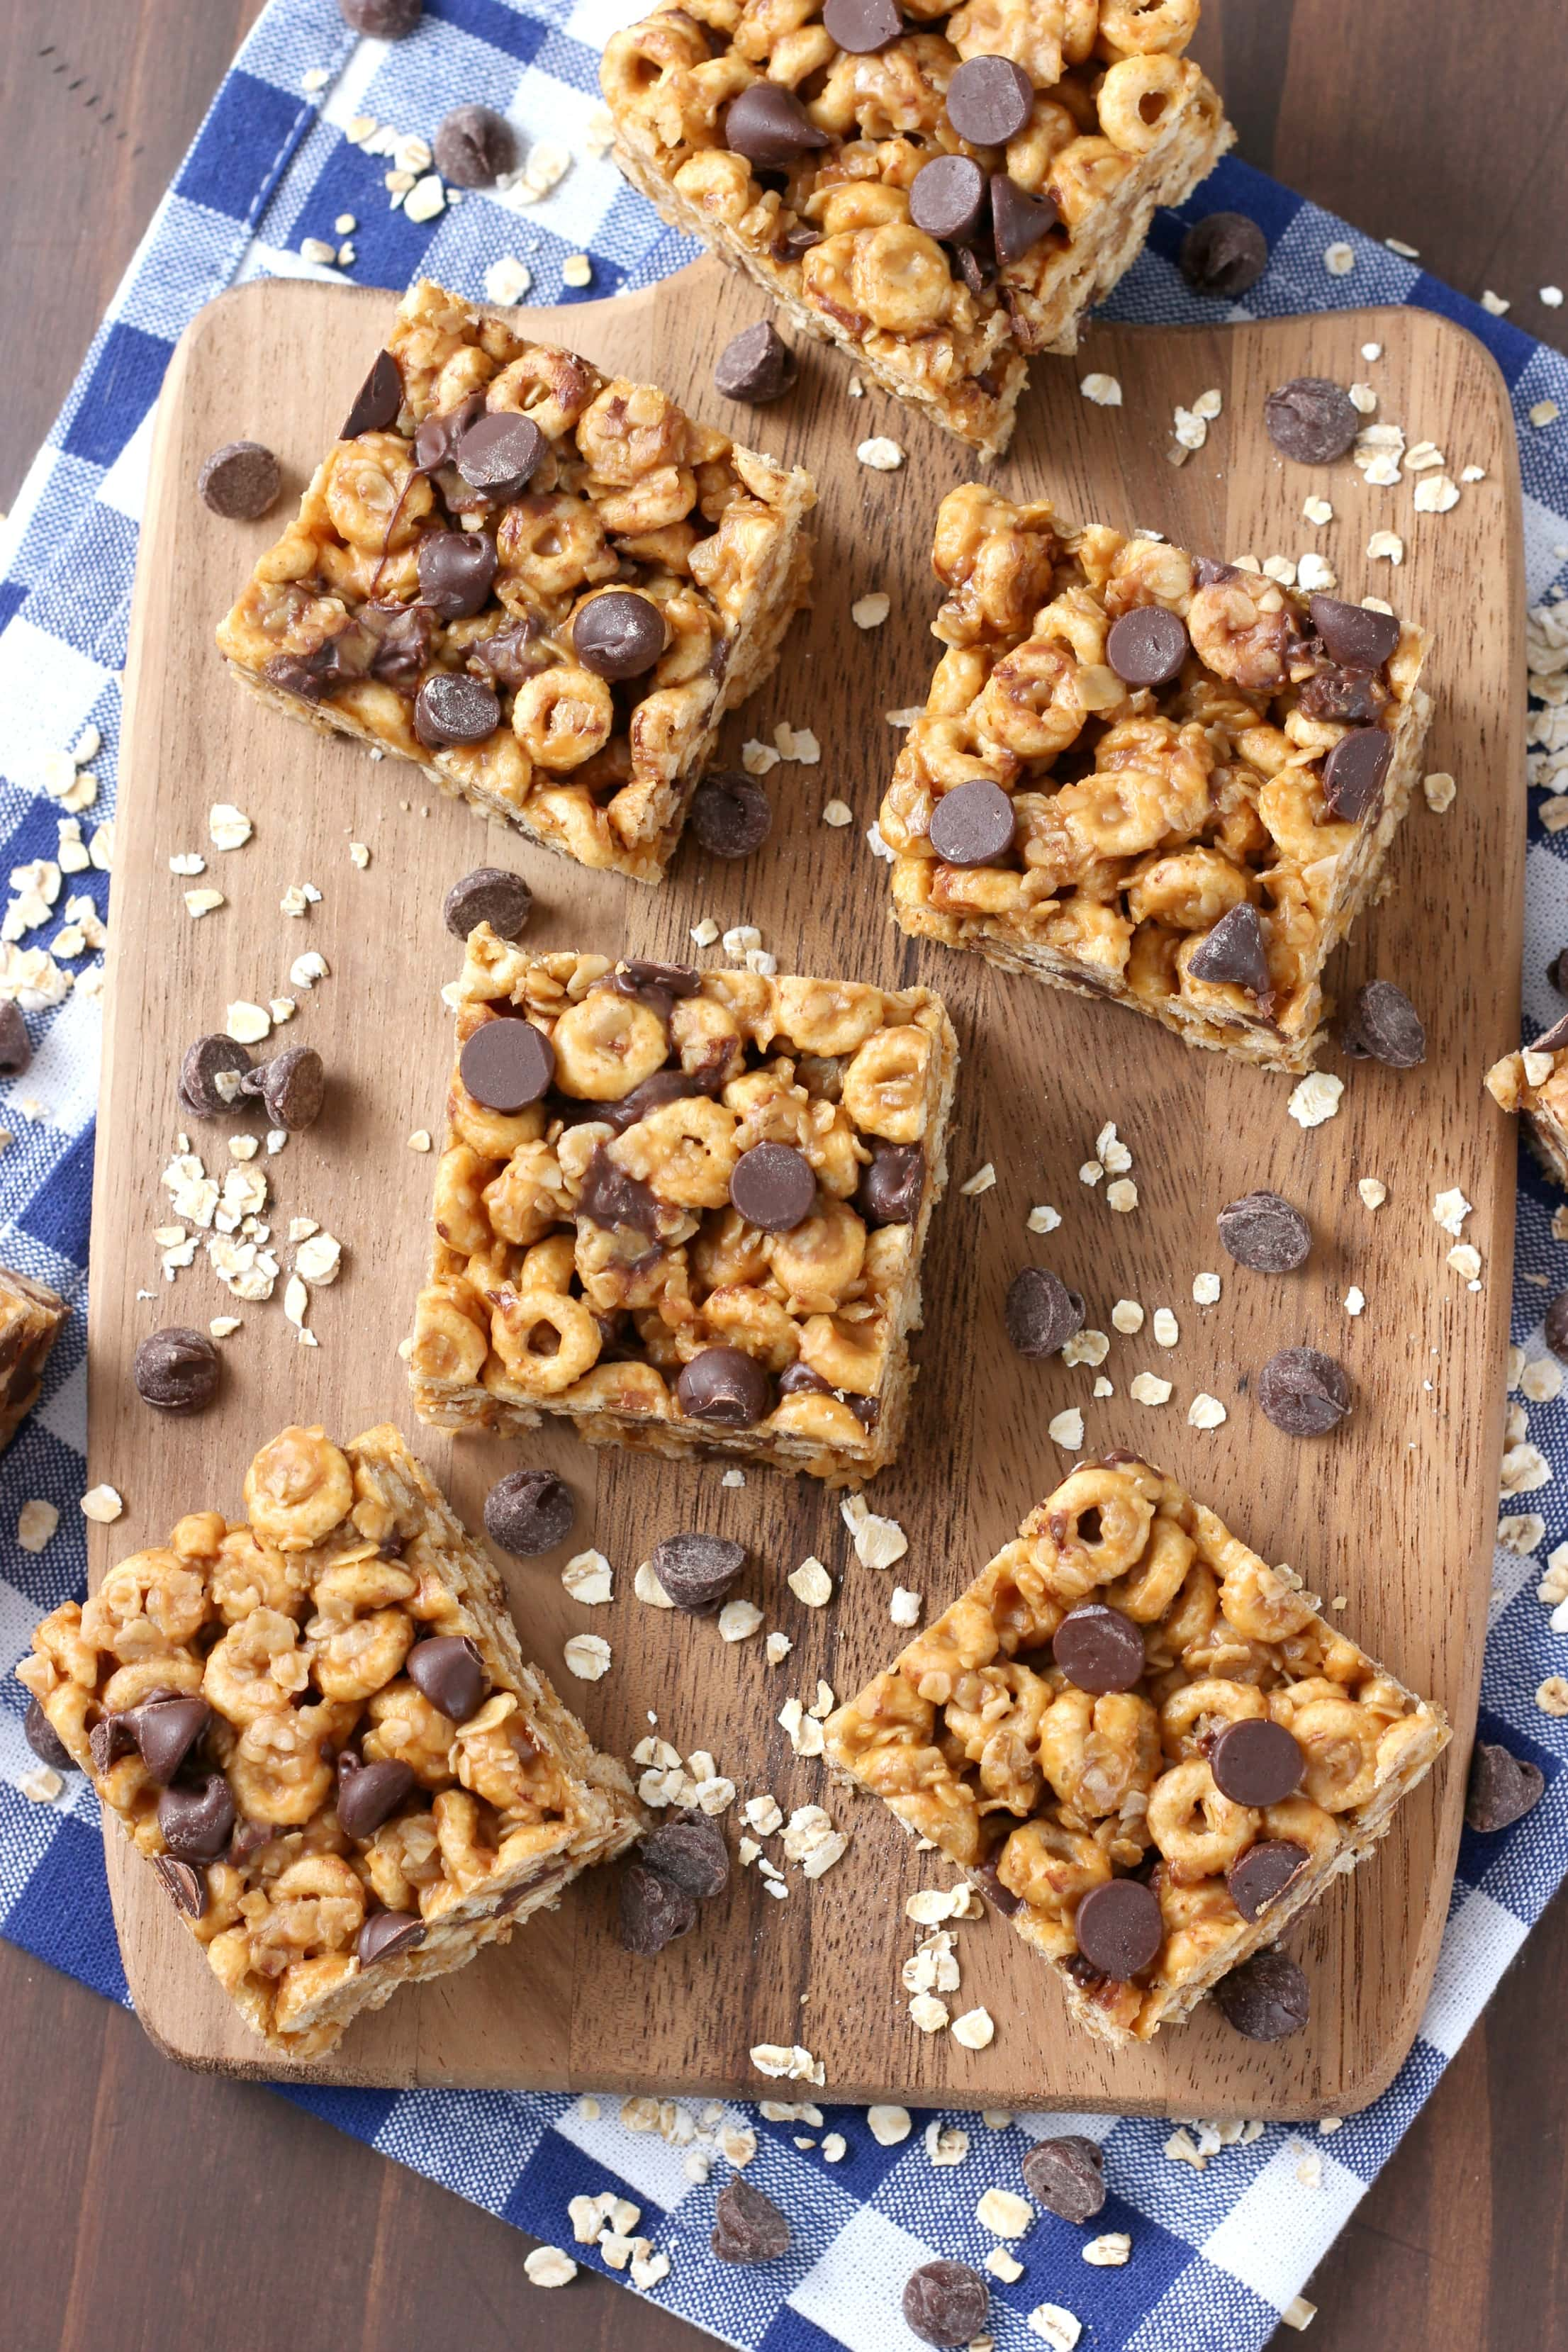 No Bake Chocolate Peanut Butter Honey Cereal Bars Recipe from A Kitchen Addiction